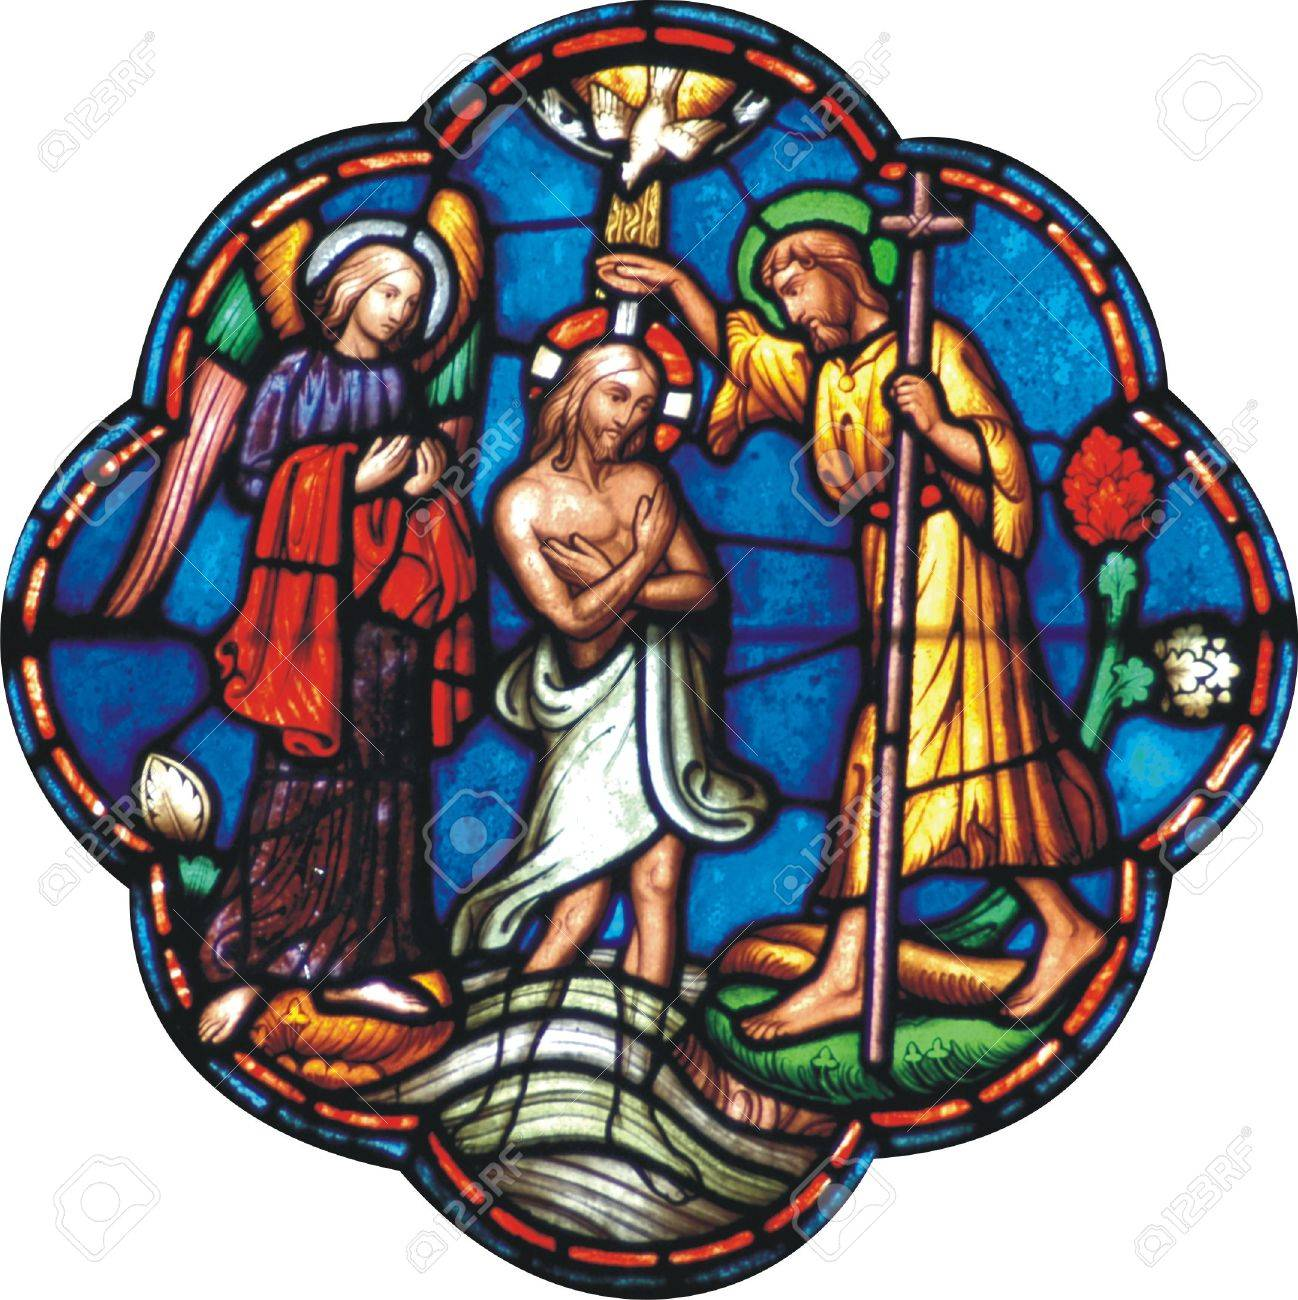 baptism of jesus stock photo picture and royalty free image